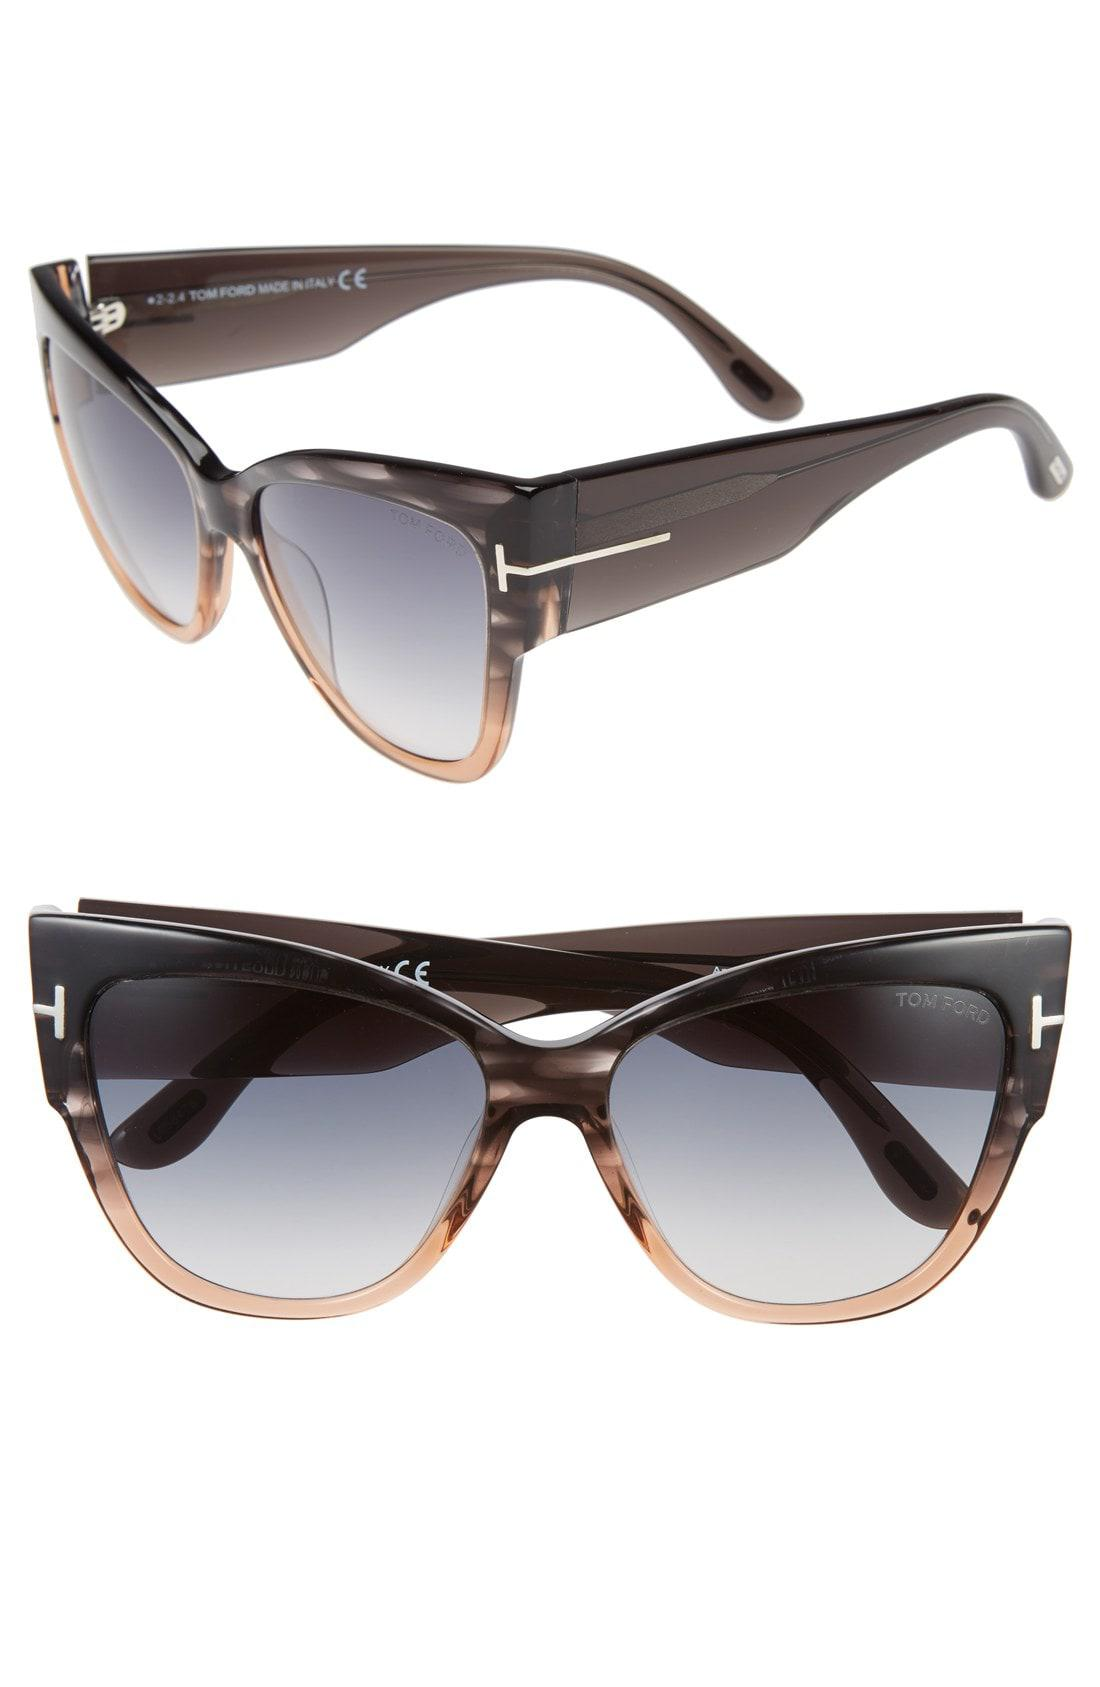 35e9ccbee8a Tom Ford - Gray Anoushka 57mm Gradient Cat Eye Sunglasses - Lyst. View  fullscreen